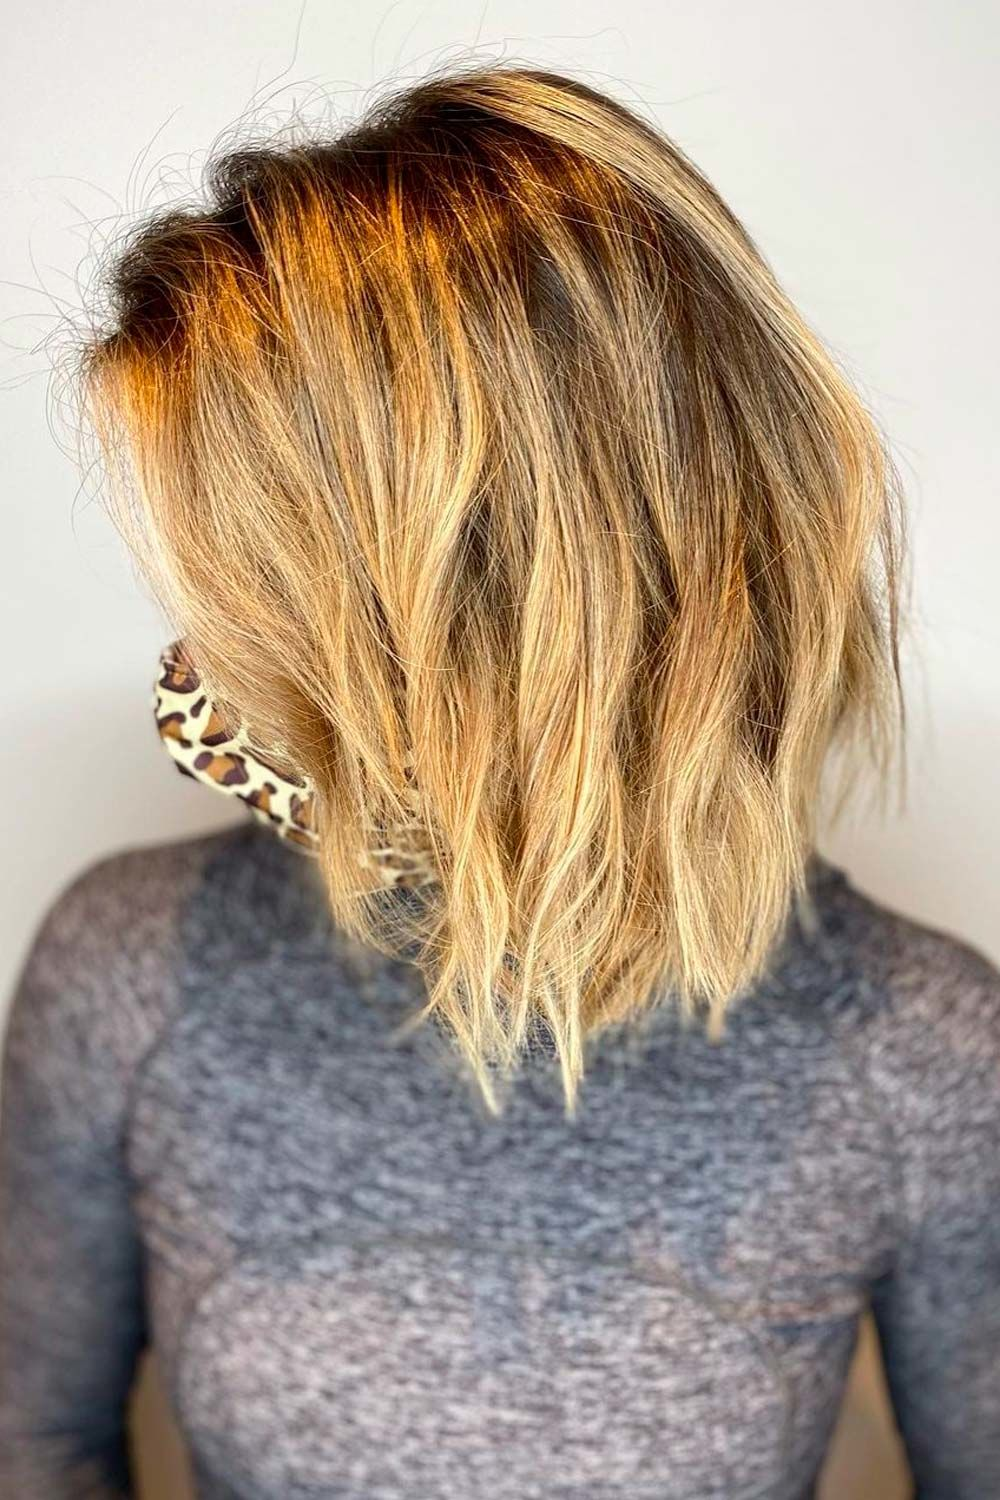 Messy Short To Medium Hairstyles For Round Face Shape, pixie cut round face, short hair for round faces,